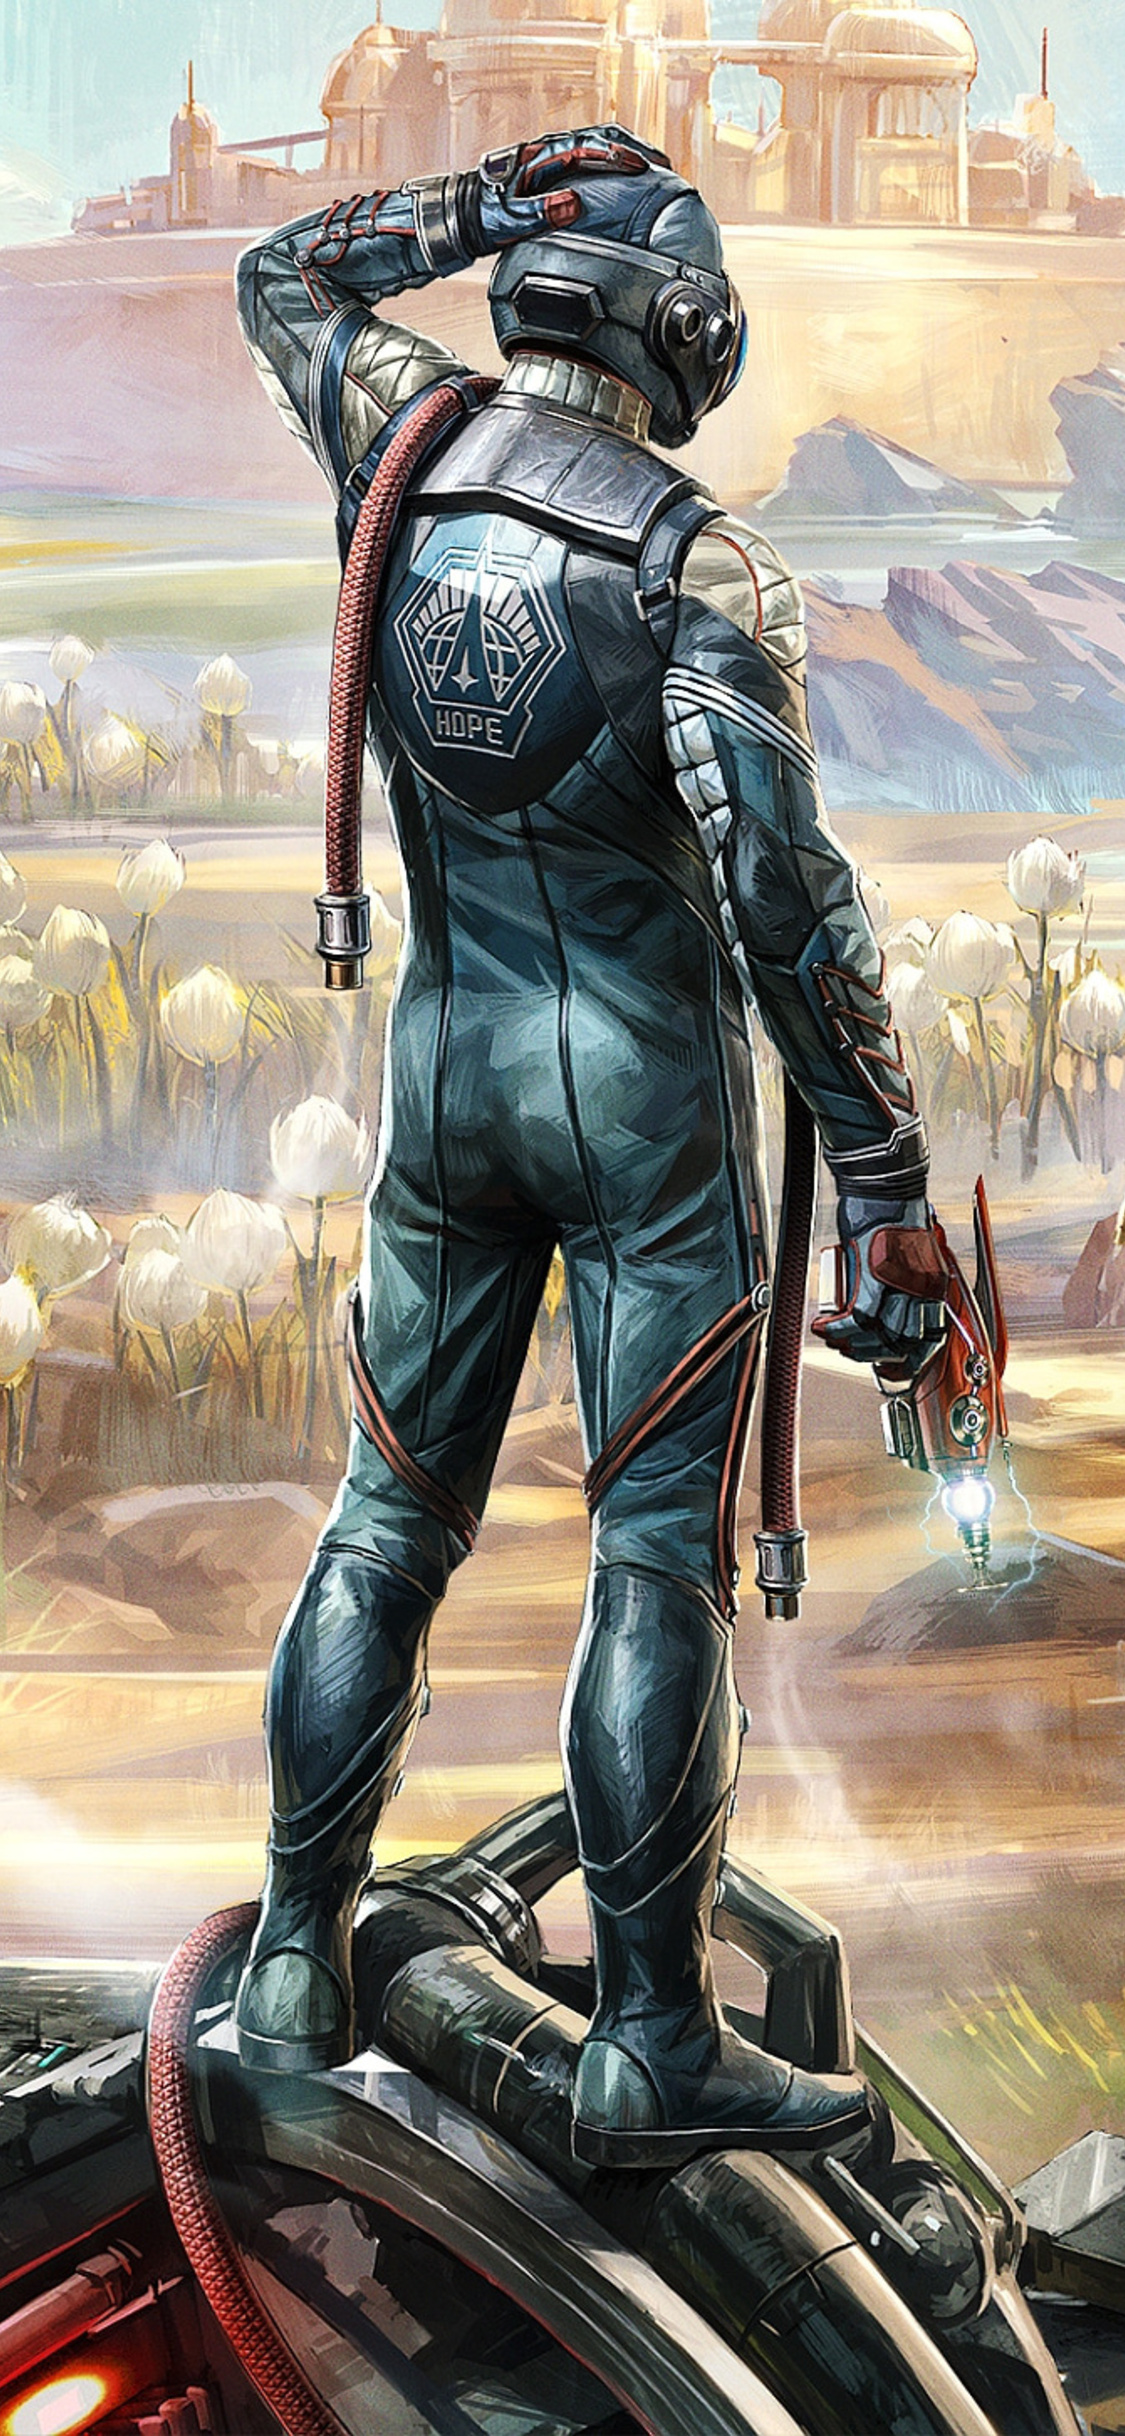 1125x2436 The Outer Worlds Game 4k Iphone Xs Iphone 10 Iphone X Hd